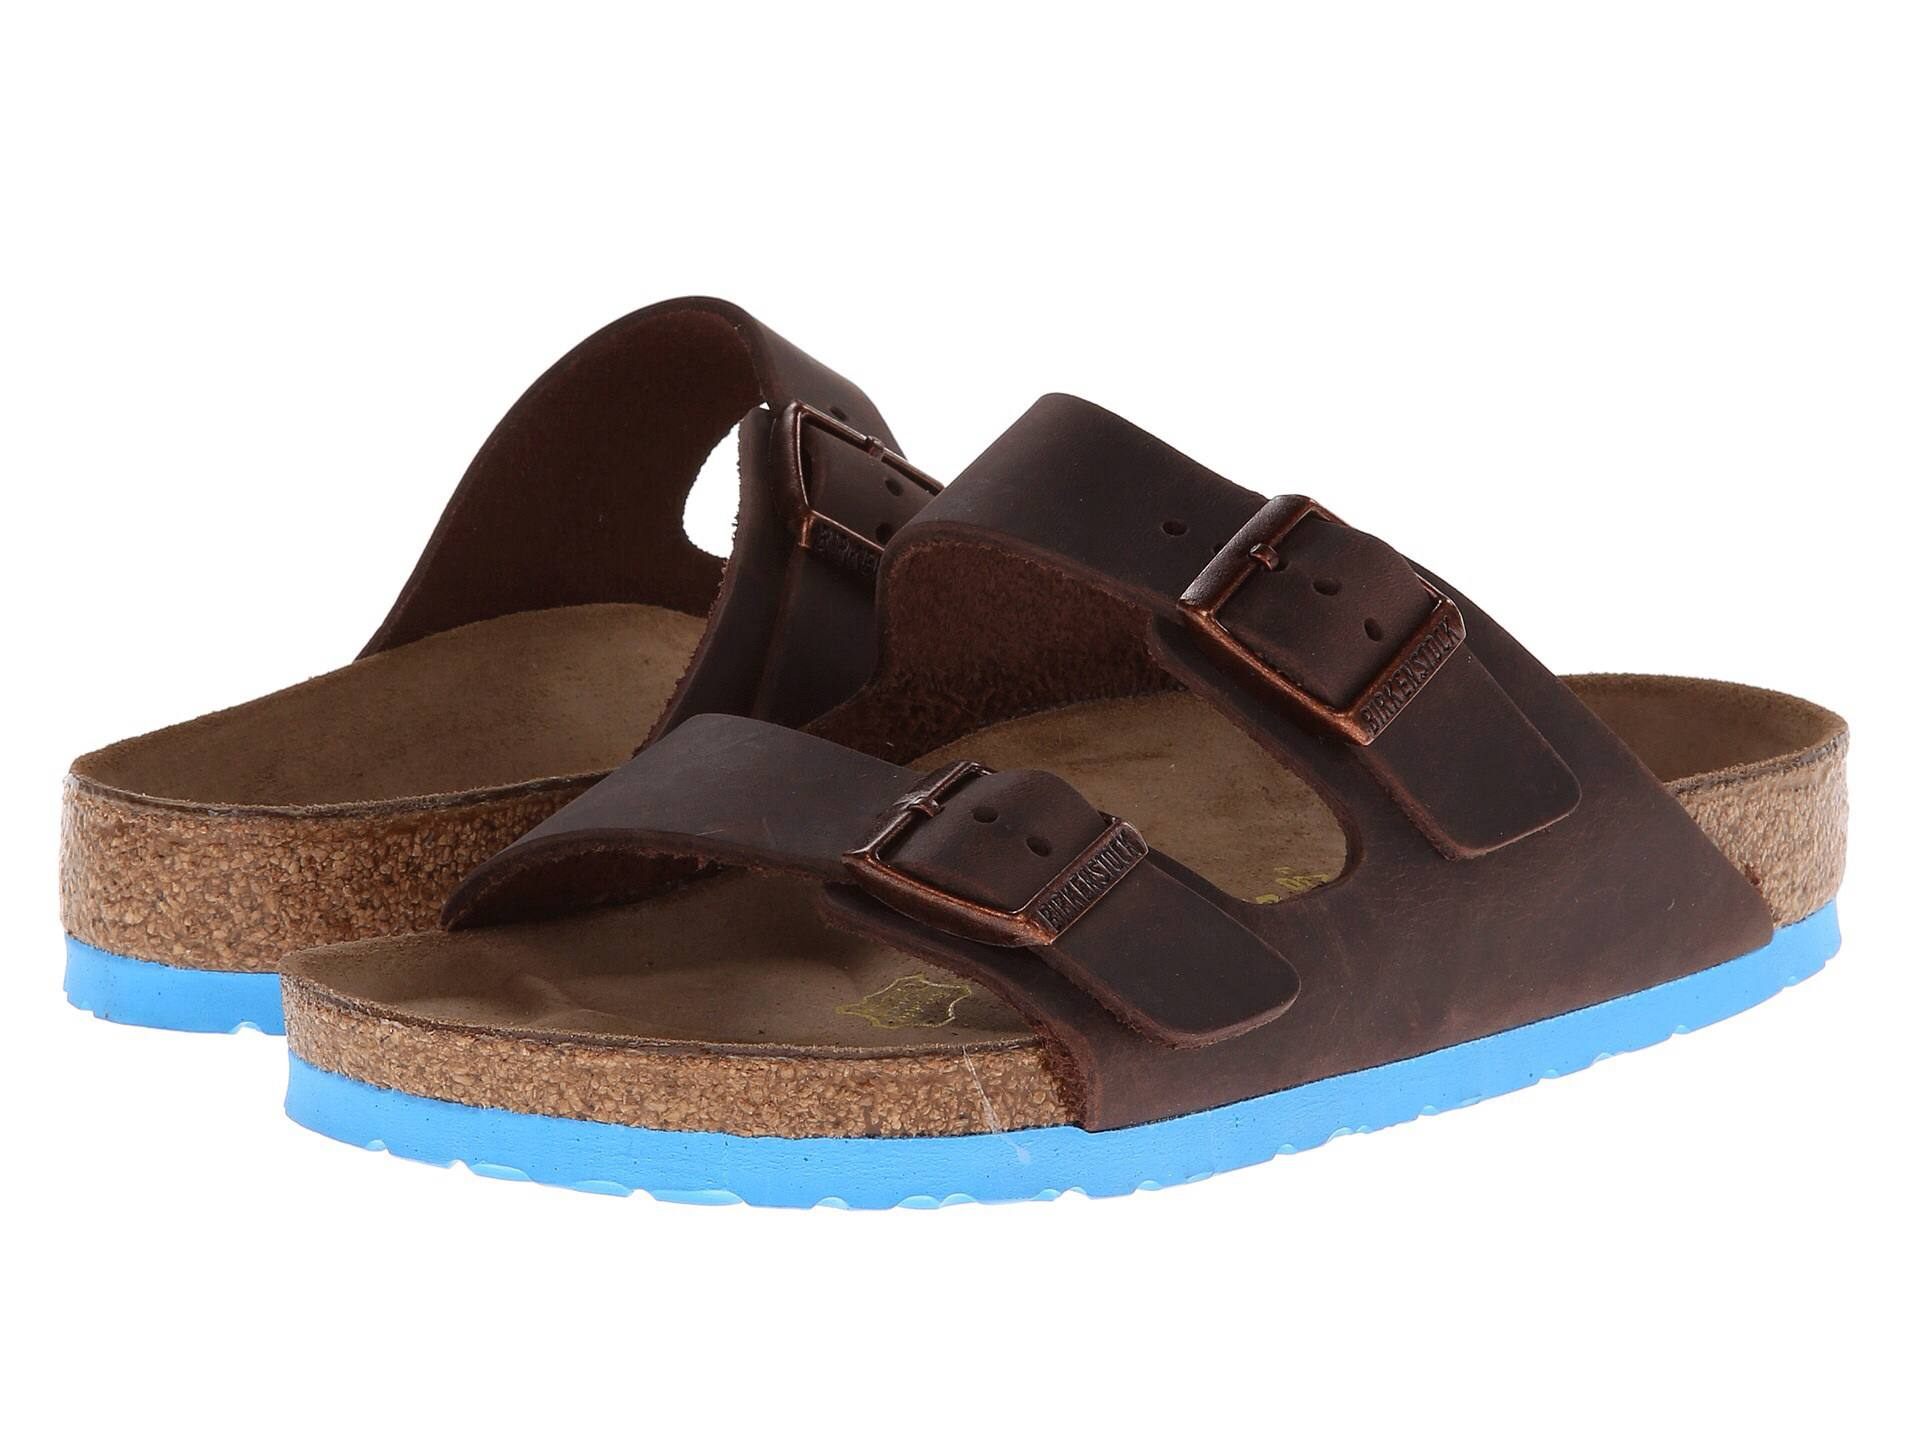 cb7d59ecb5f30 Best Classic: Birkenstock Arizona Sandals